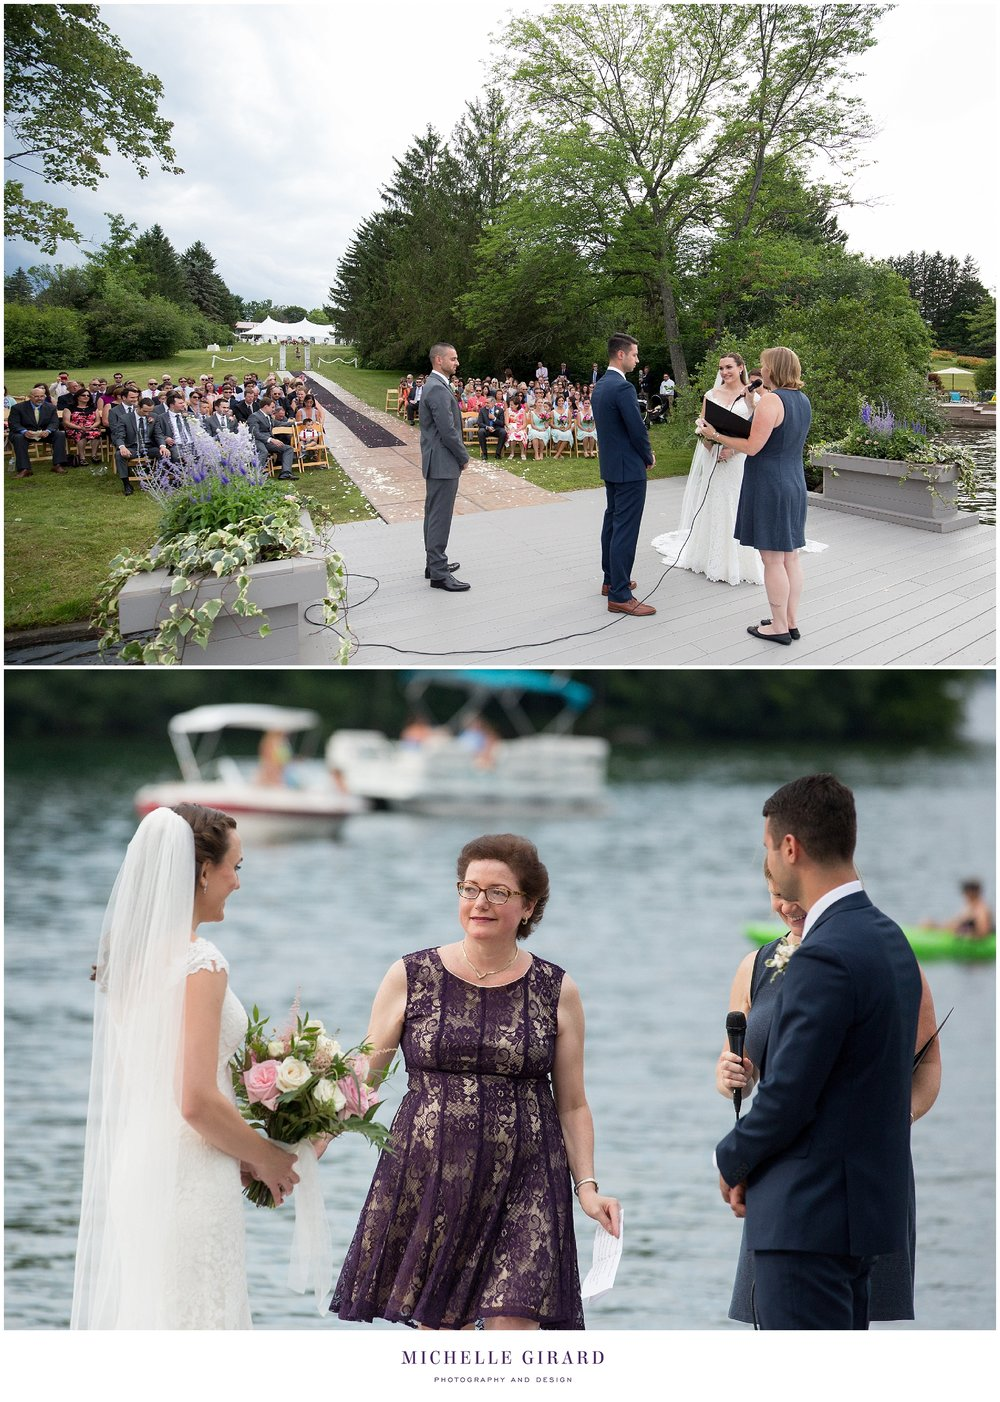 LakesideHomeWedding_BerkshiresTentReception_MichelleGirardPhotography040.jpg